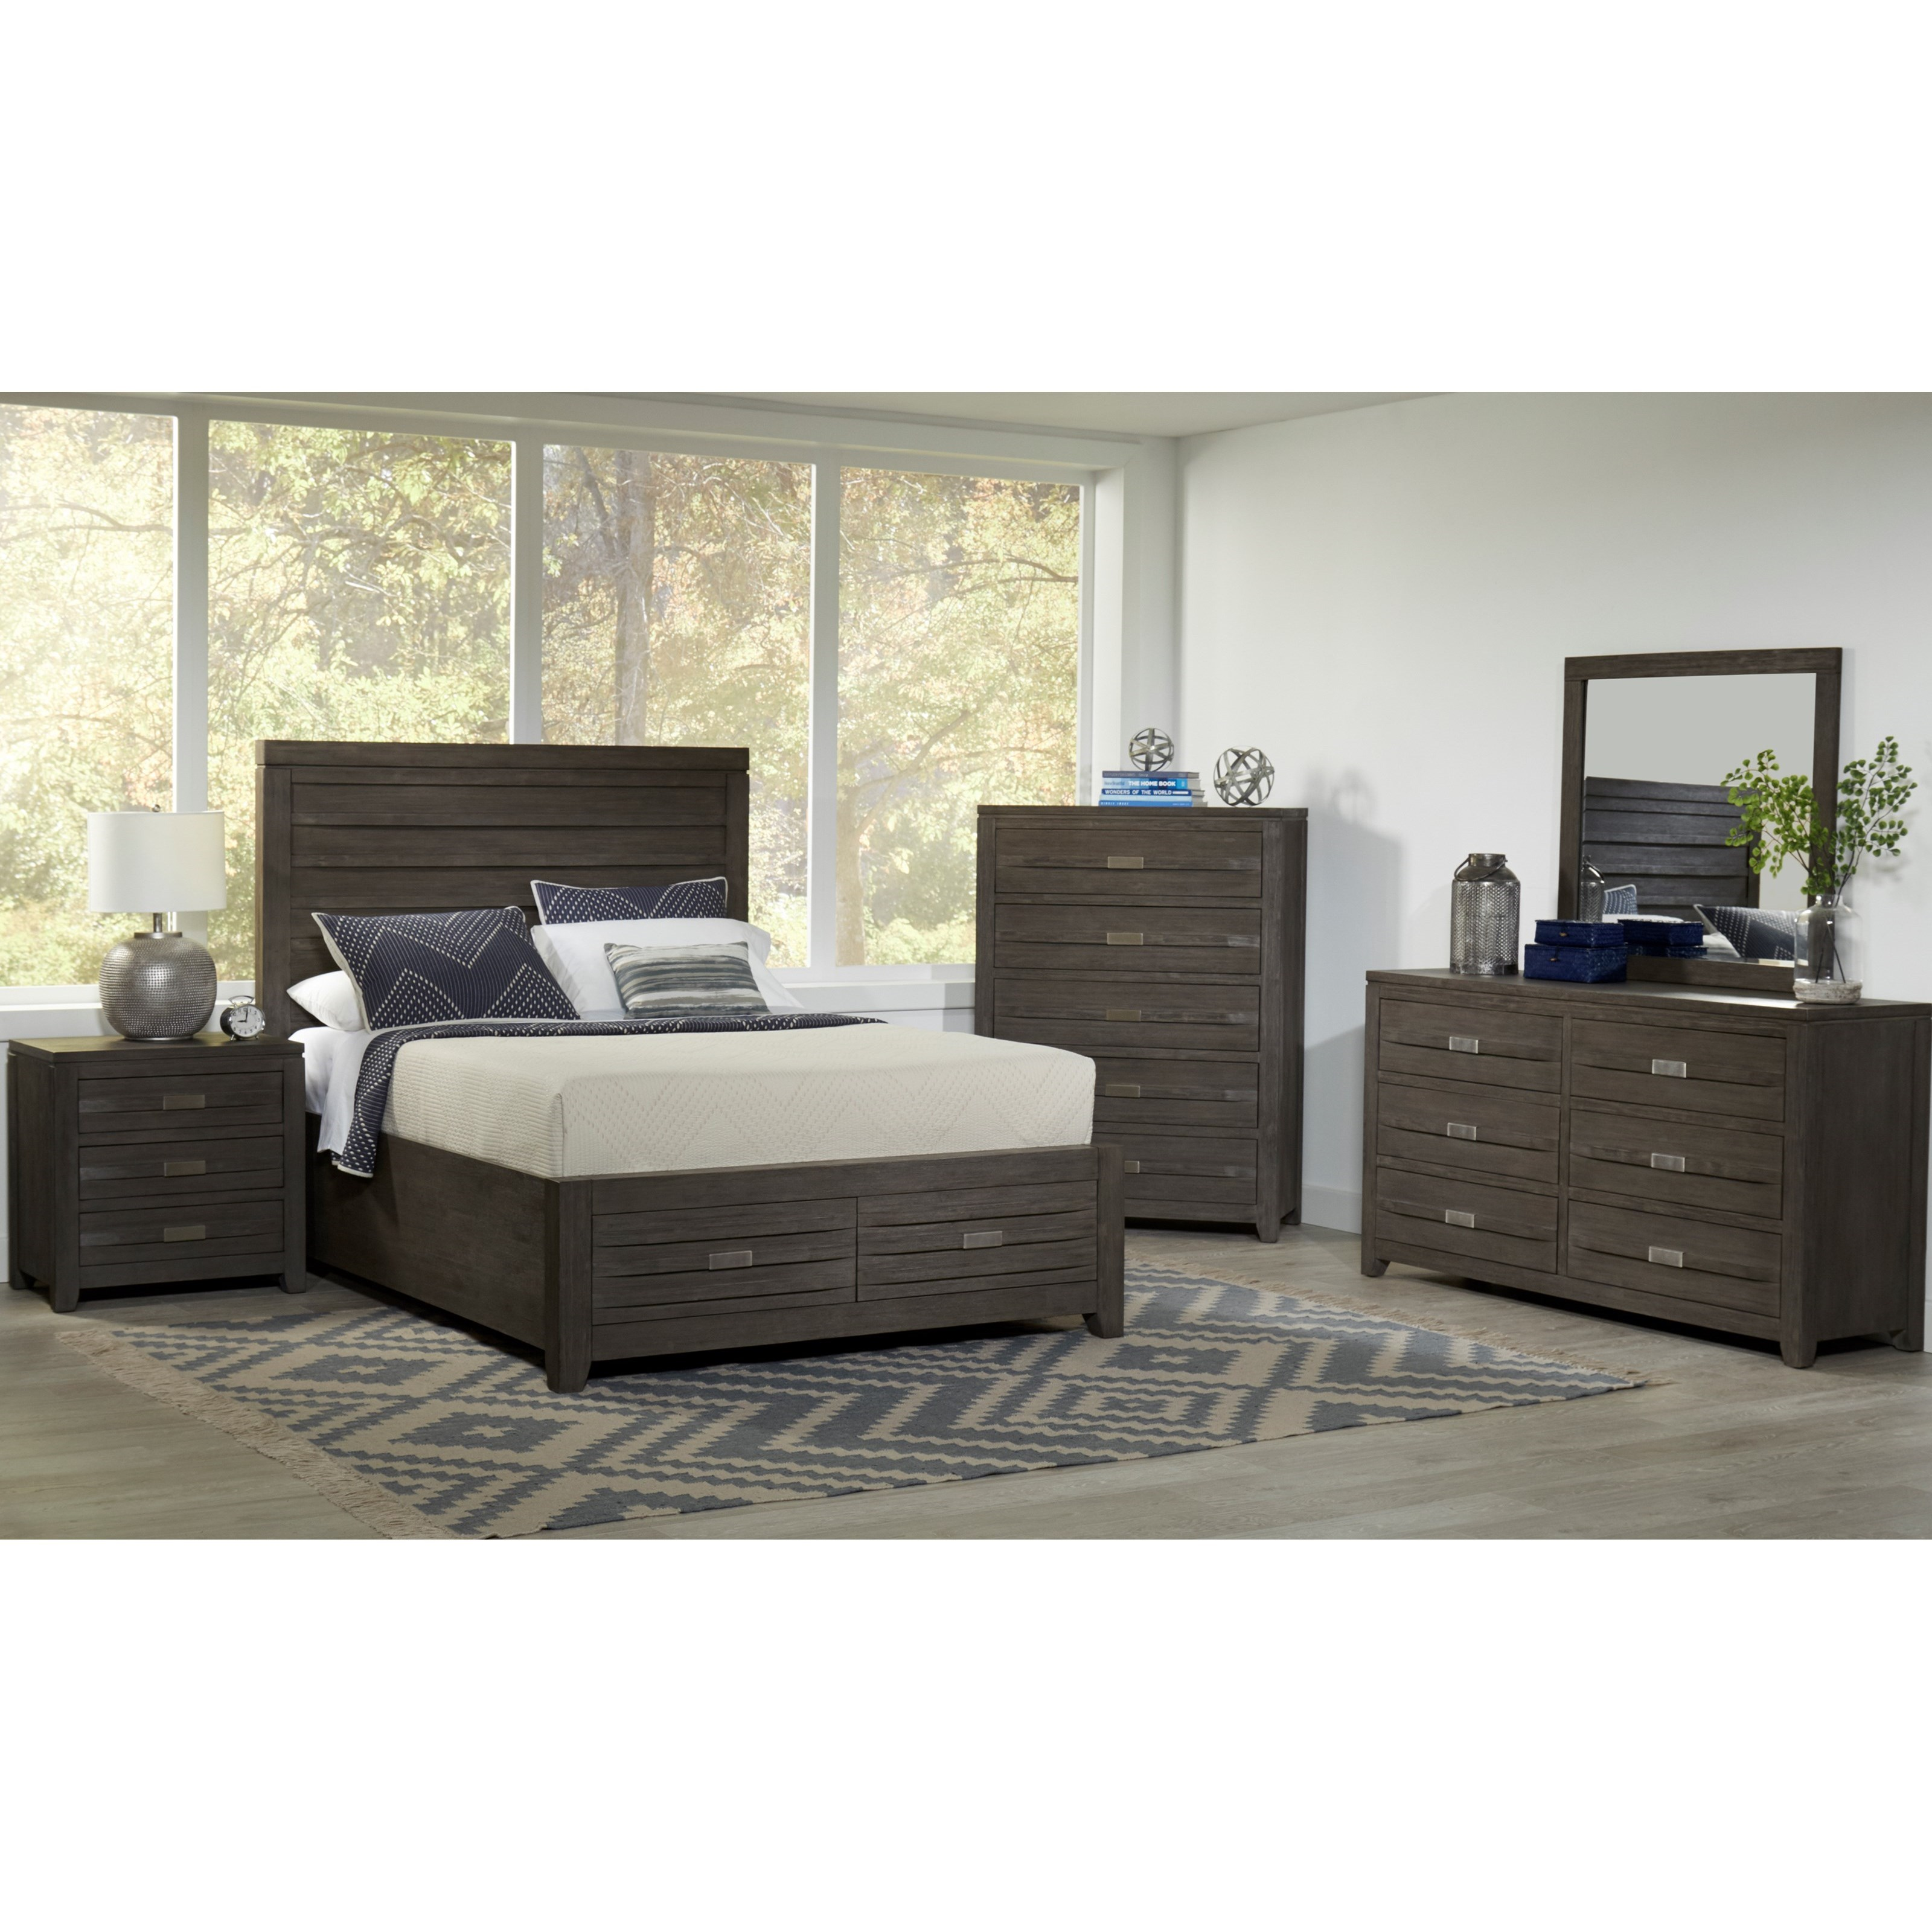 Altamonte  Queen Bedroom Group by Jofran at Simply Home by Lindy's